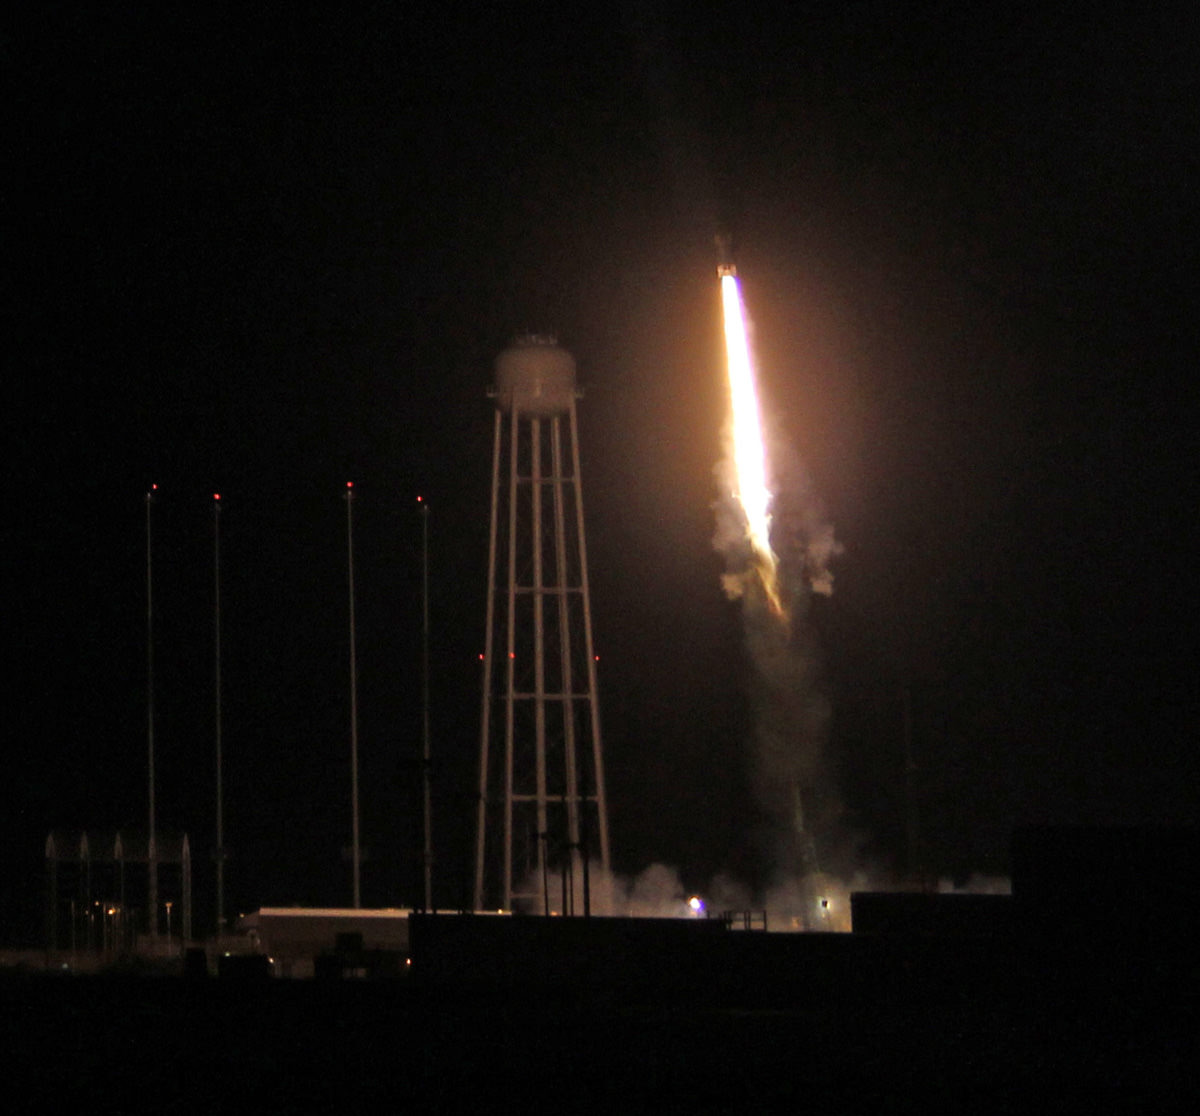 Night time blast off of 4 stage NASA Black Brant XII suborbital rocket at 11:05 p.m. EDT on June 5, 2013 from the NASA Wallops Flight Facility carrying the CIBER astronomy payload to study when the first stars and galaxies formed in the universe.  The Black Brant soars above huge  water tower at adjacent Antares rocket launch pad at NASA Wallops.  Credit: Ken Kremer- kenkremer.com